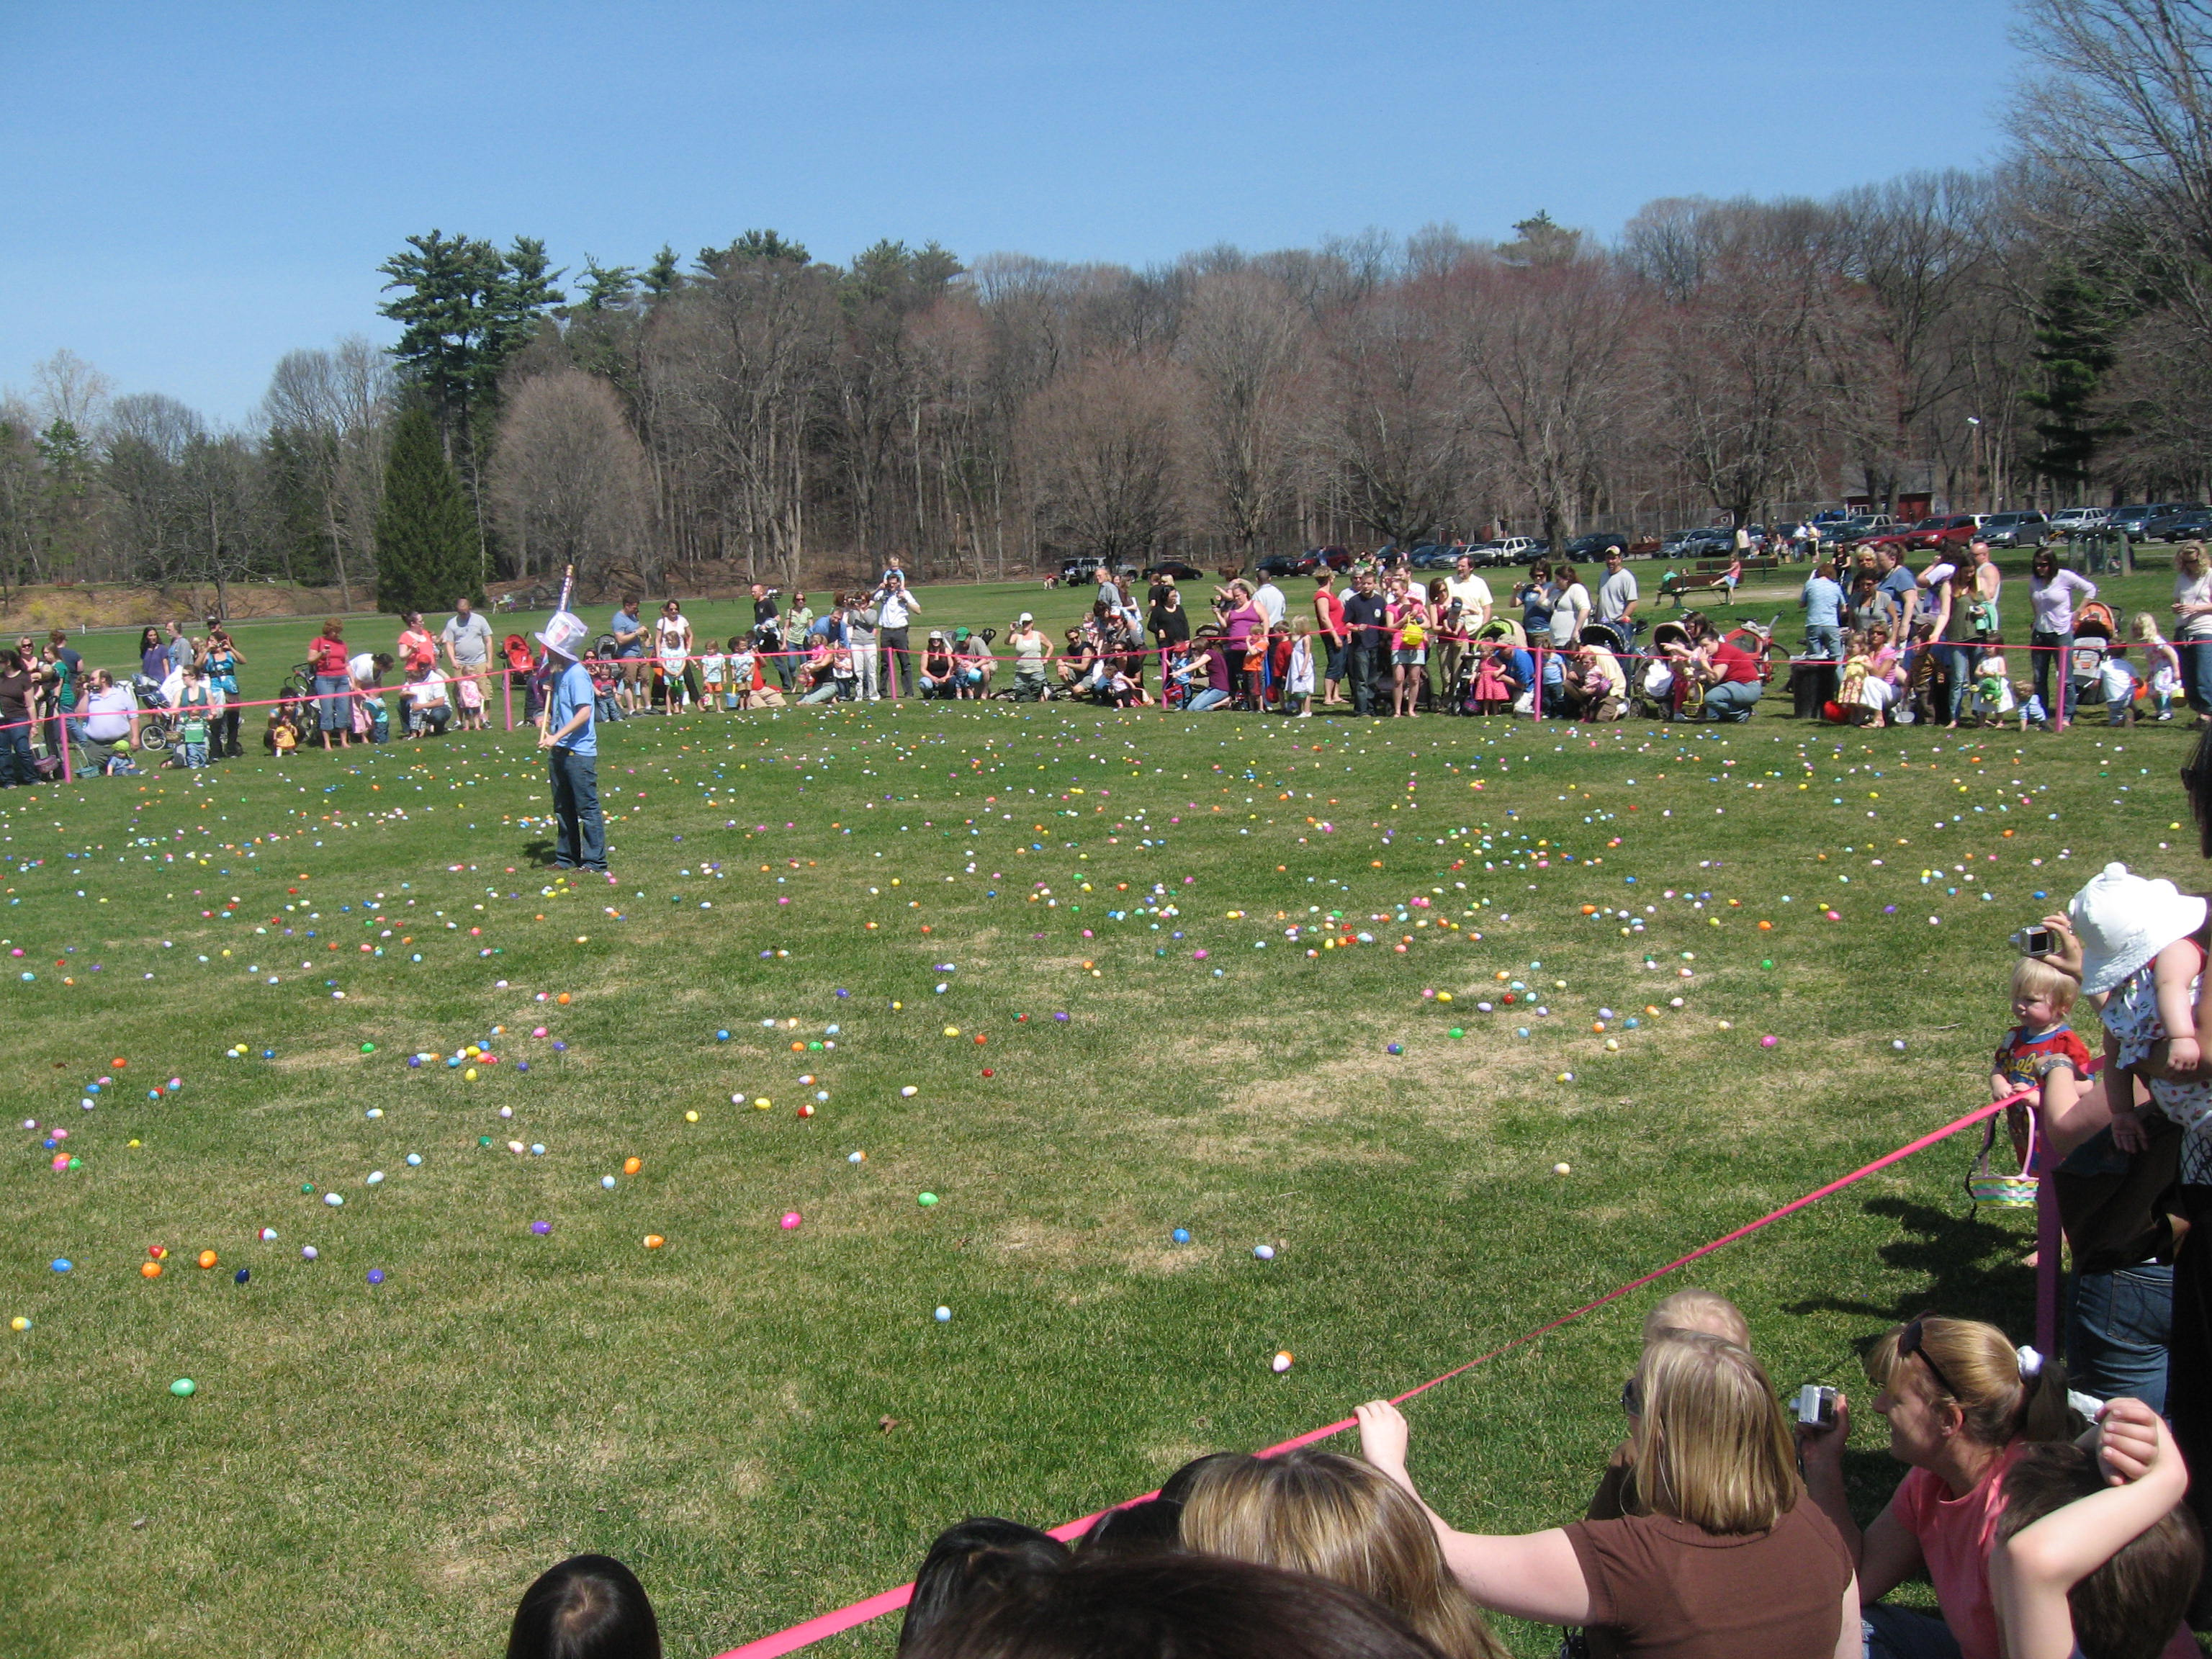 People at egg hunt event